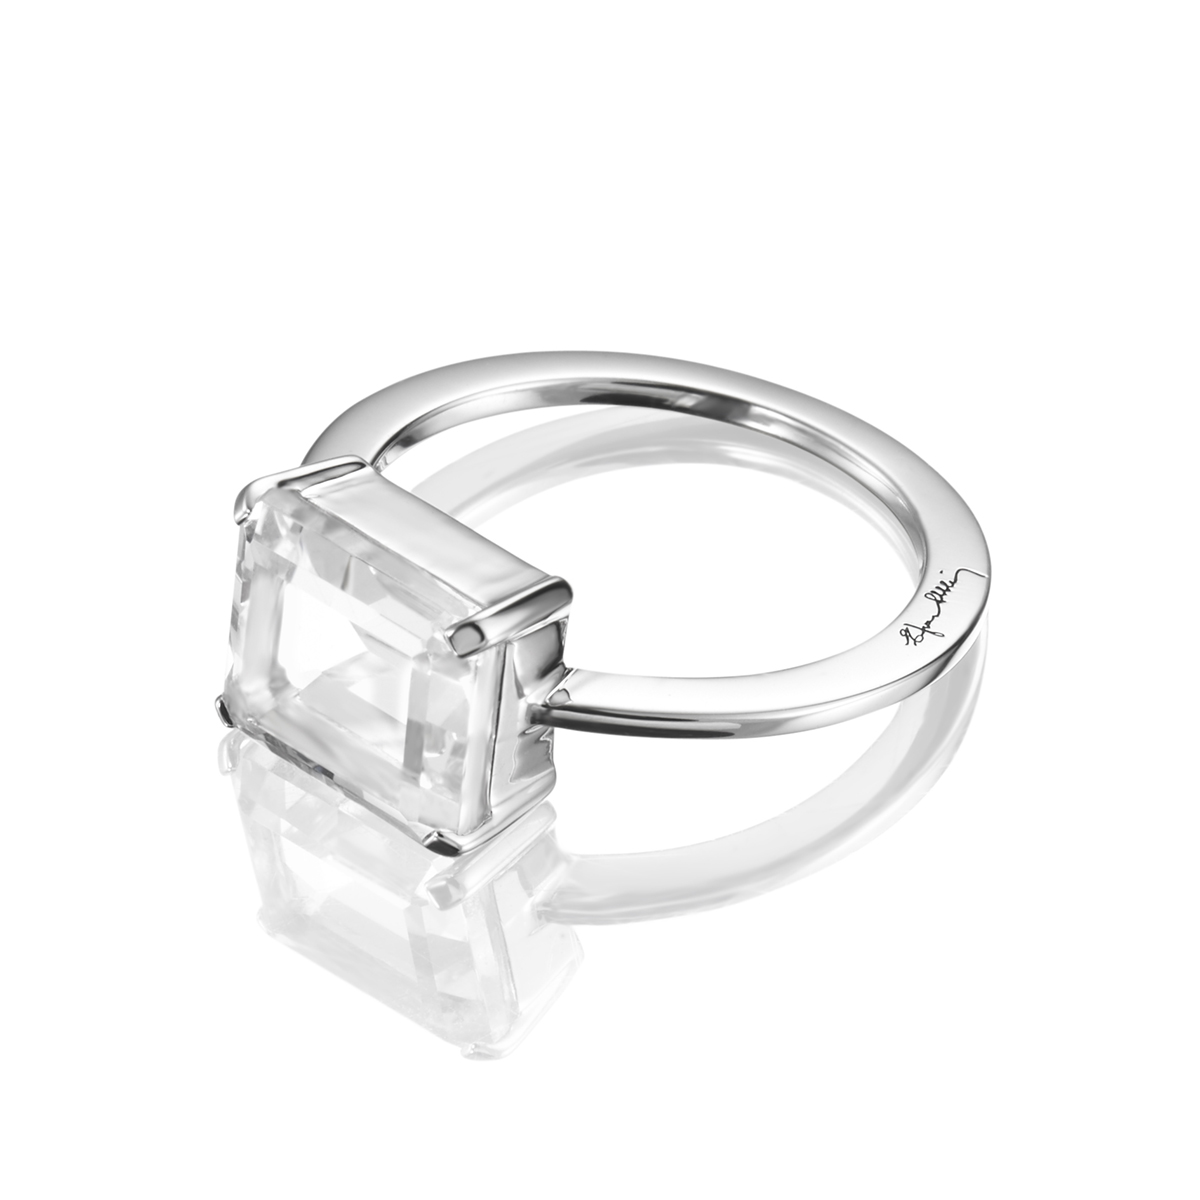 Efva-Attling-18_A-Clear-Dream-Ring-13-100-01339-2-